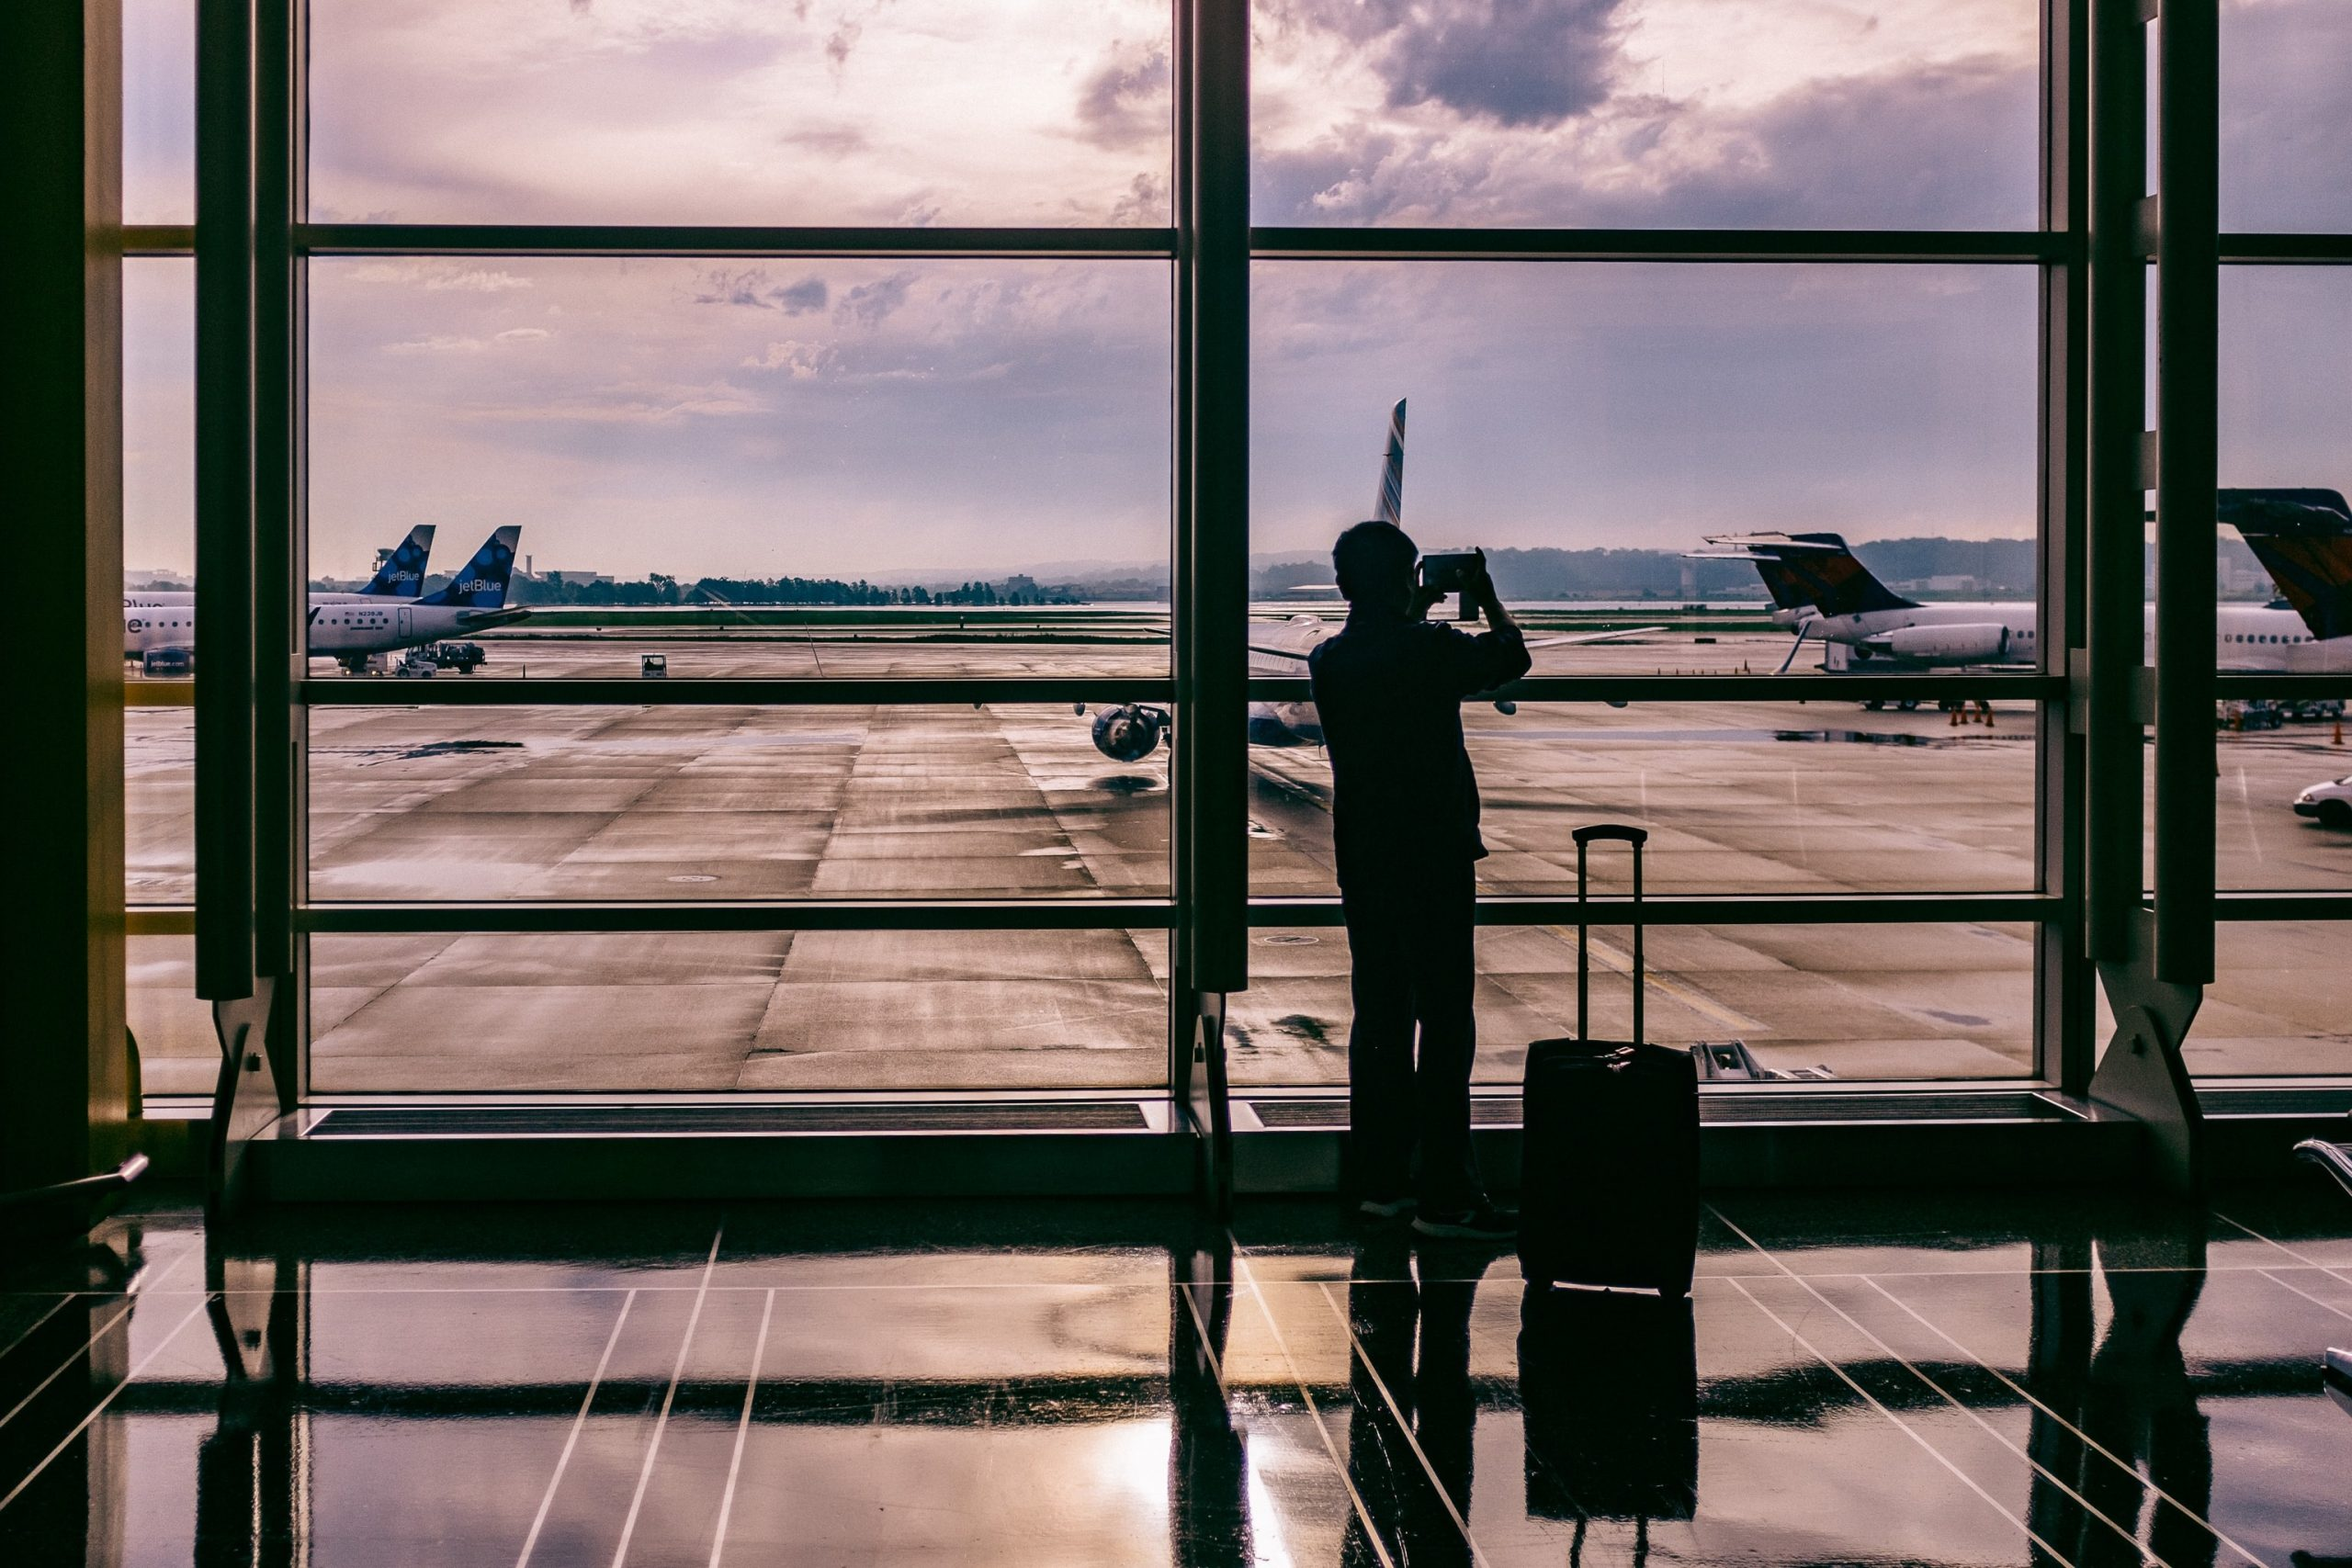 2 Ways to Quickly Get Your Travel Visa Before Travelling – Our Guide